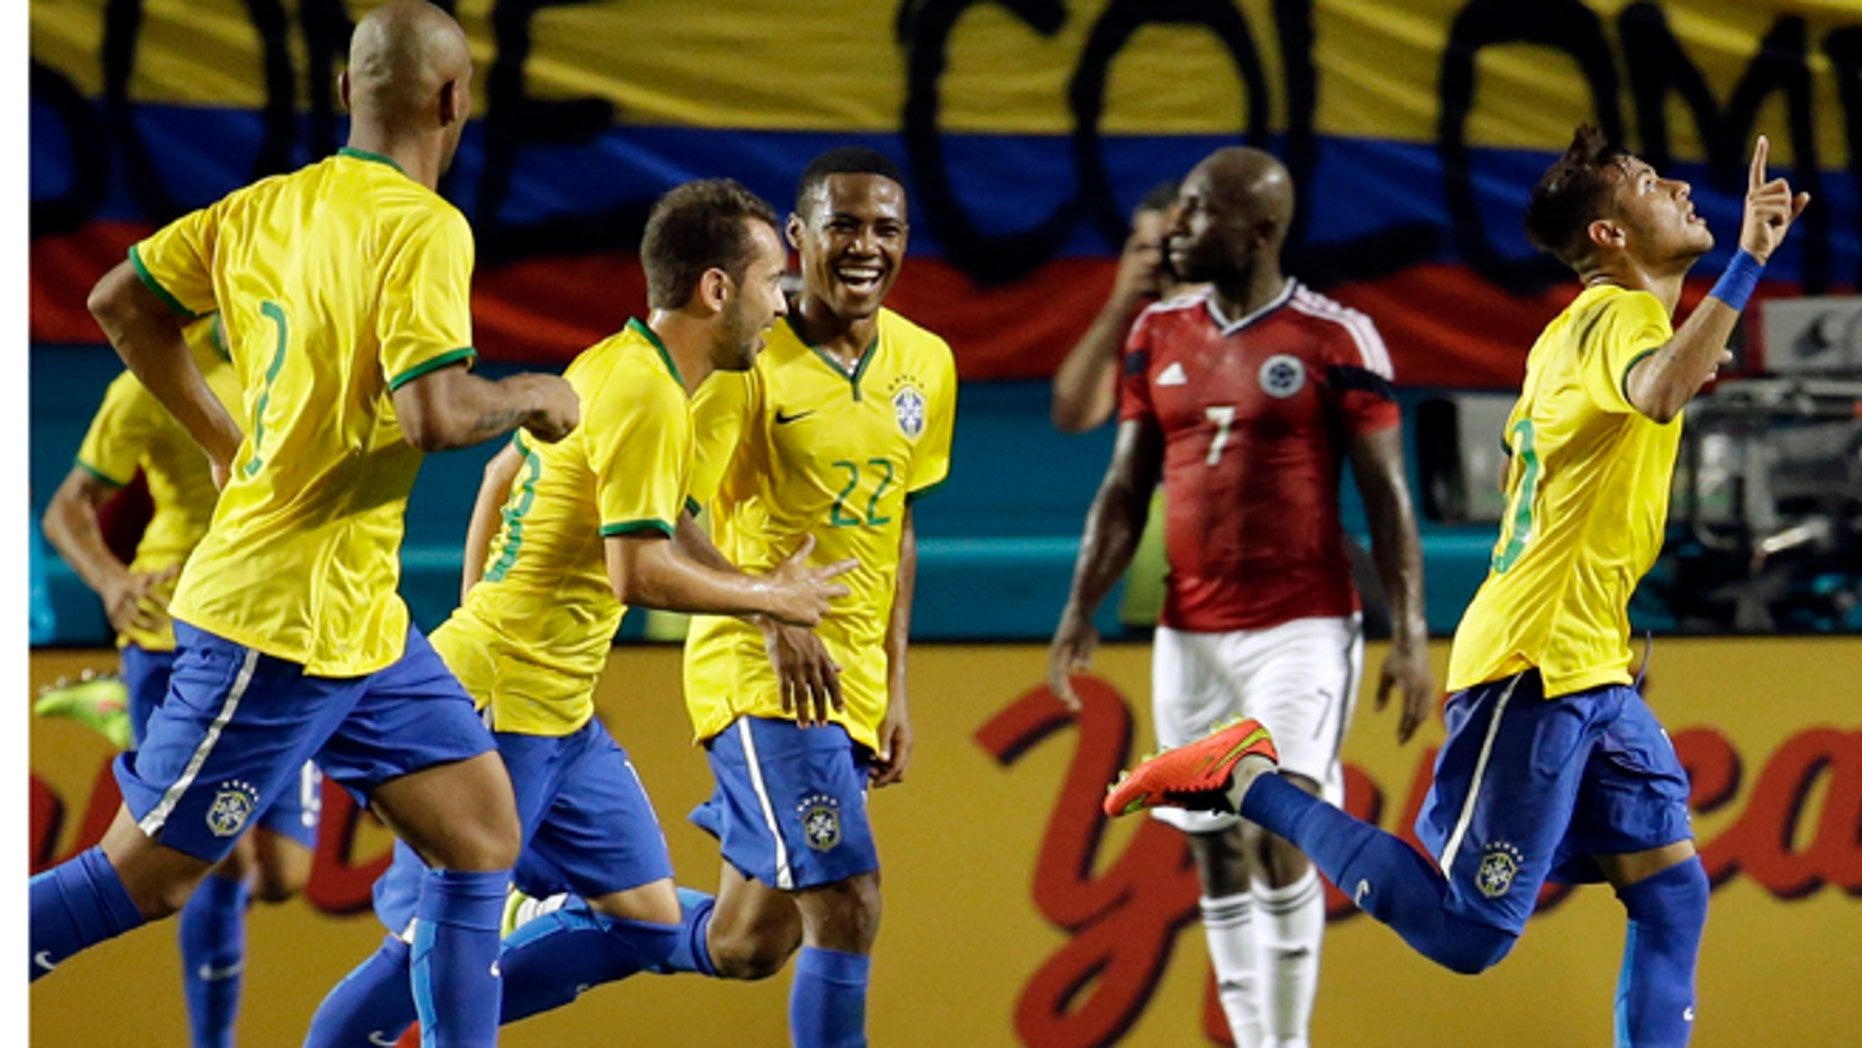 Brazil's Neymar, right, celebrates after scoring a goal against Colombia in the second half of an international friendly soccer match, Friday, Sept. 5, 2014, in Miami Gardens, Fla. Brazil defeated Colombia 1-0. (AP Photo/Lynne Sladky)